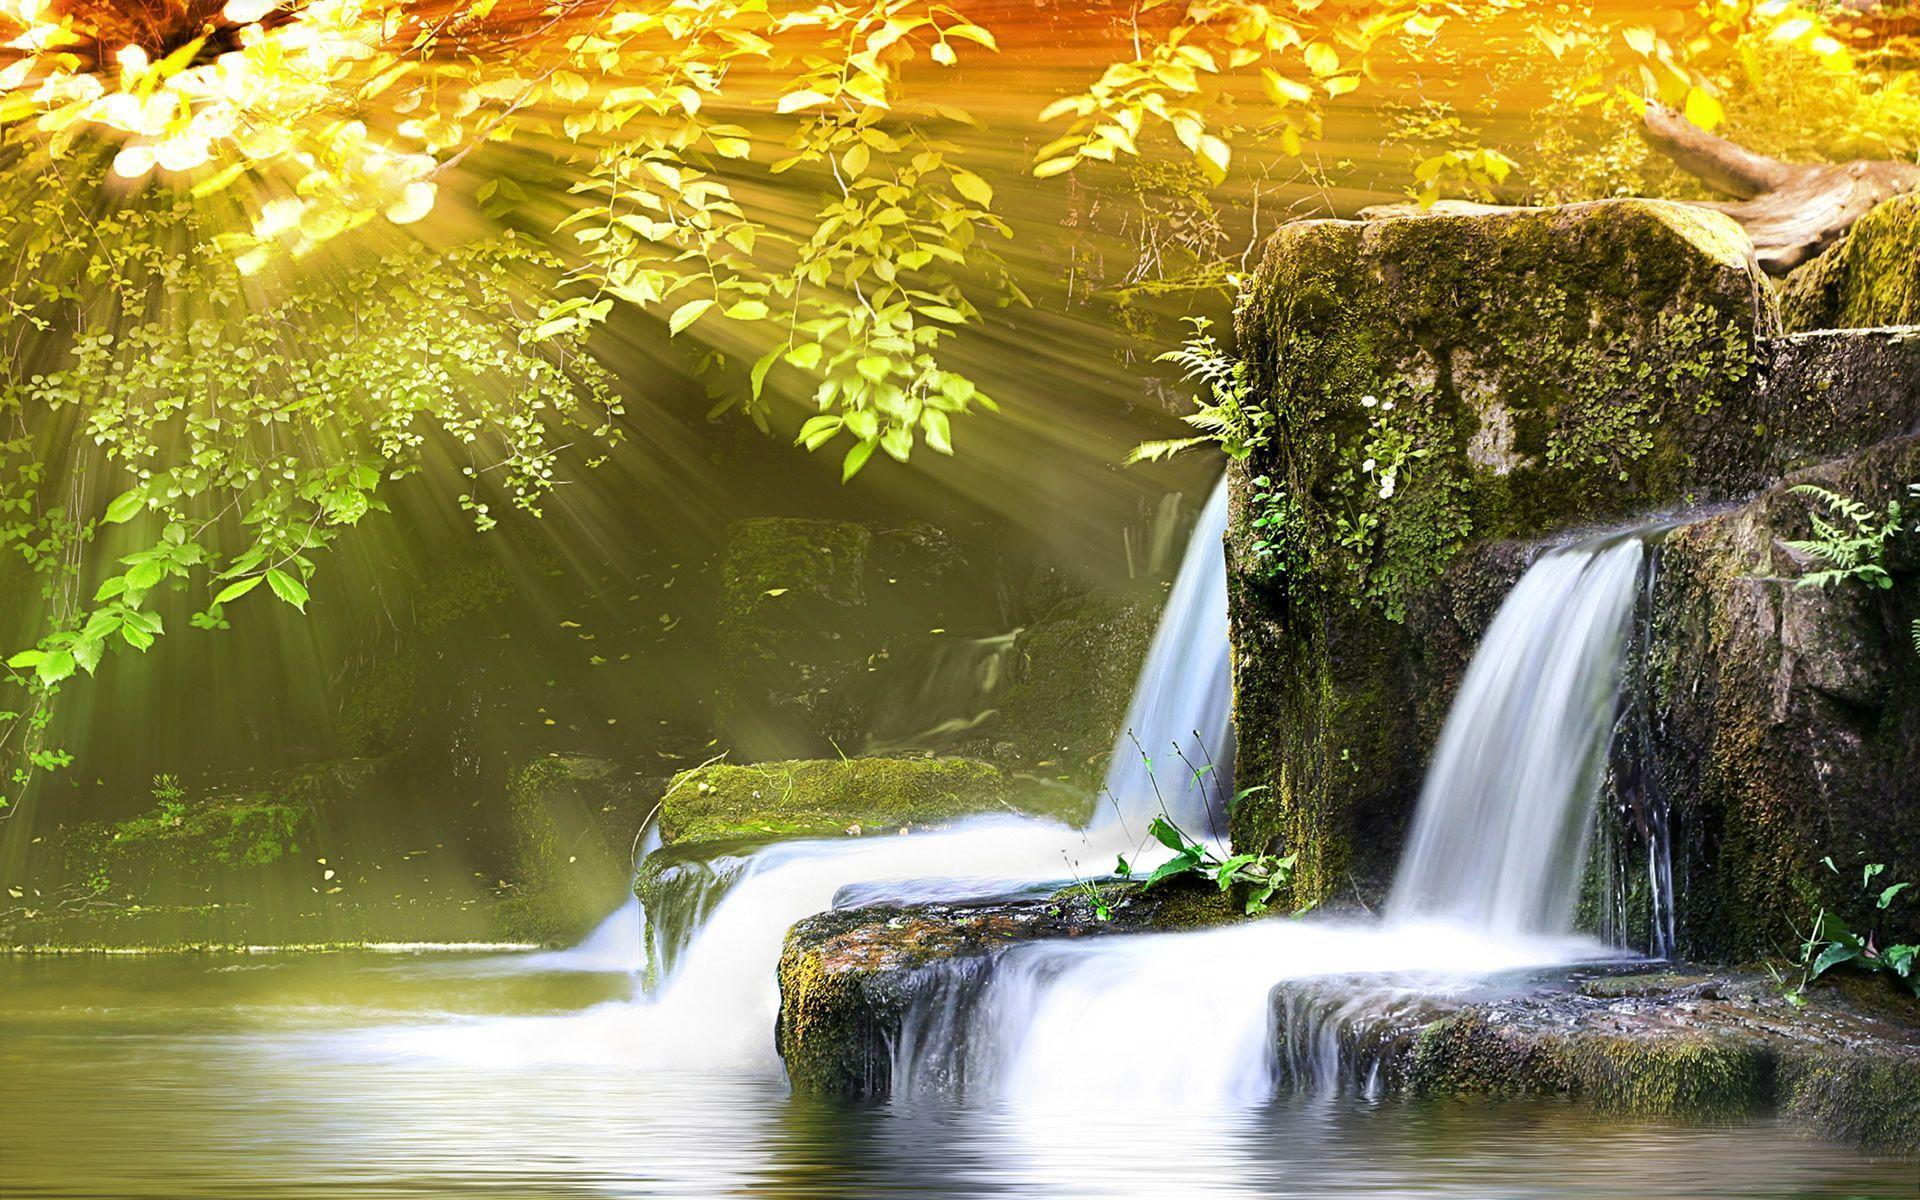 Nature Backgrounds Image - Wallpaper Cave